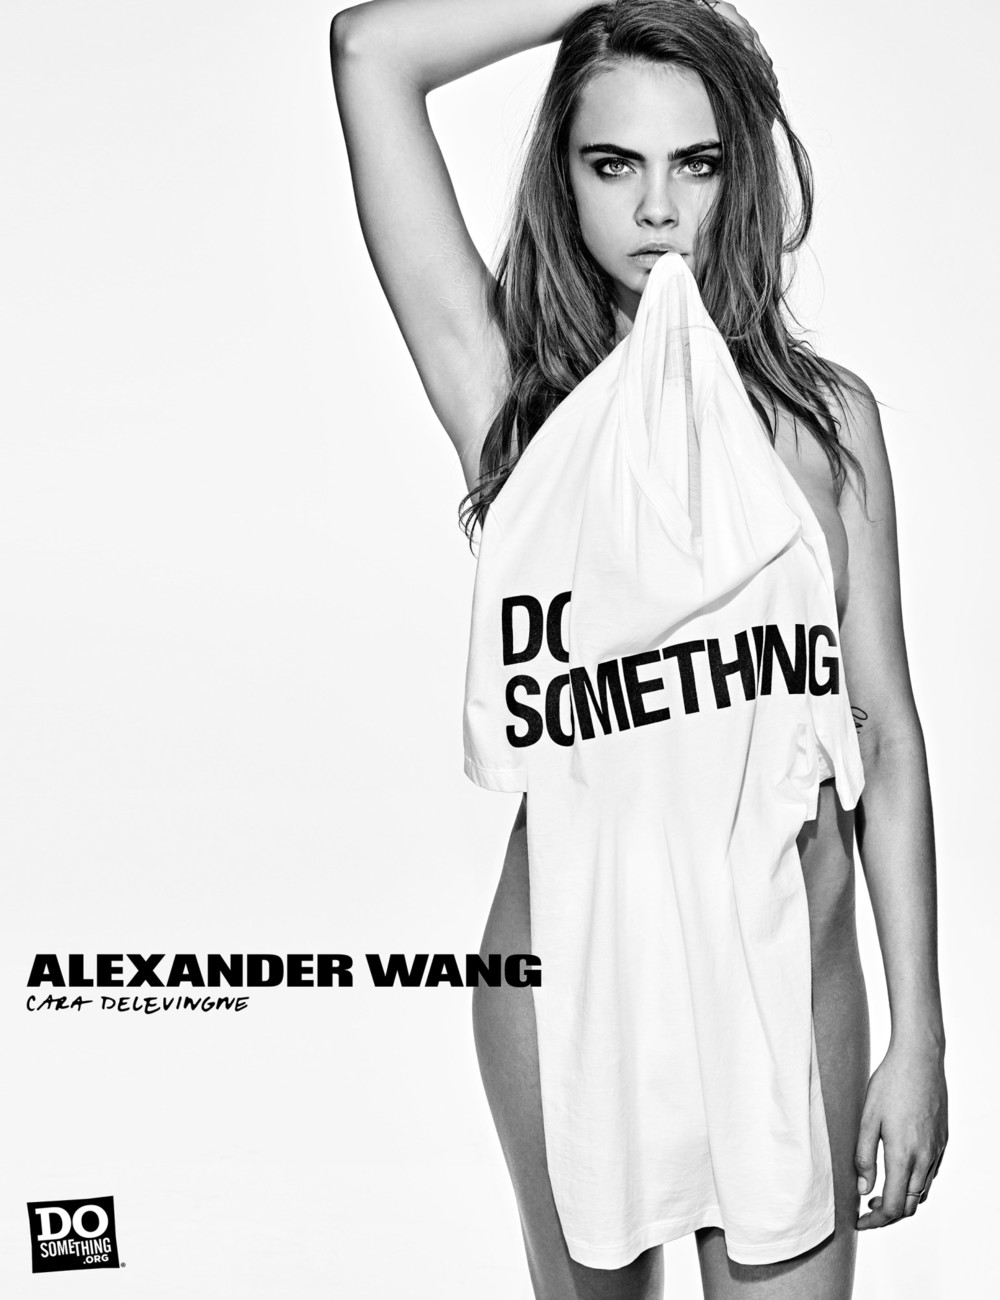 8-CARA-DELEVINGNE-AW-X-DO-SOMETHING-1542x2004.jpg